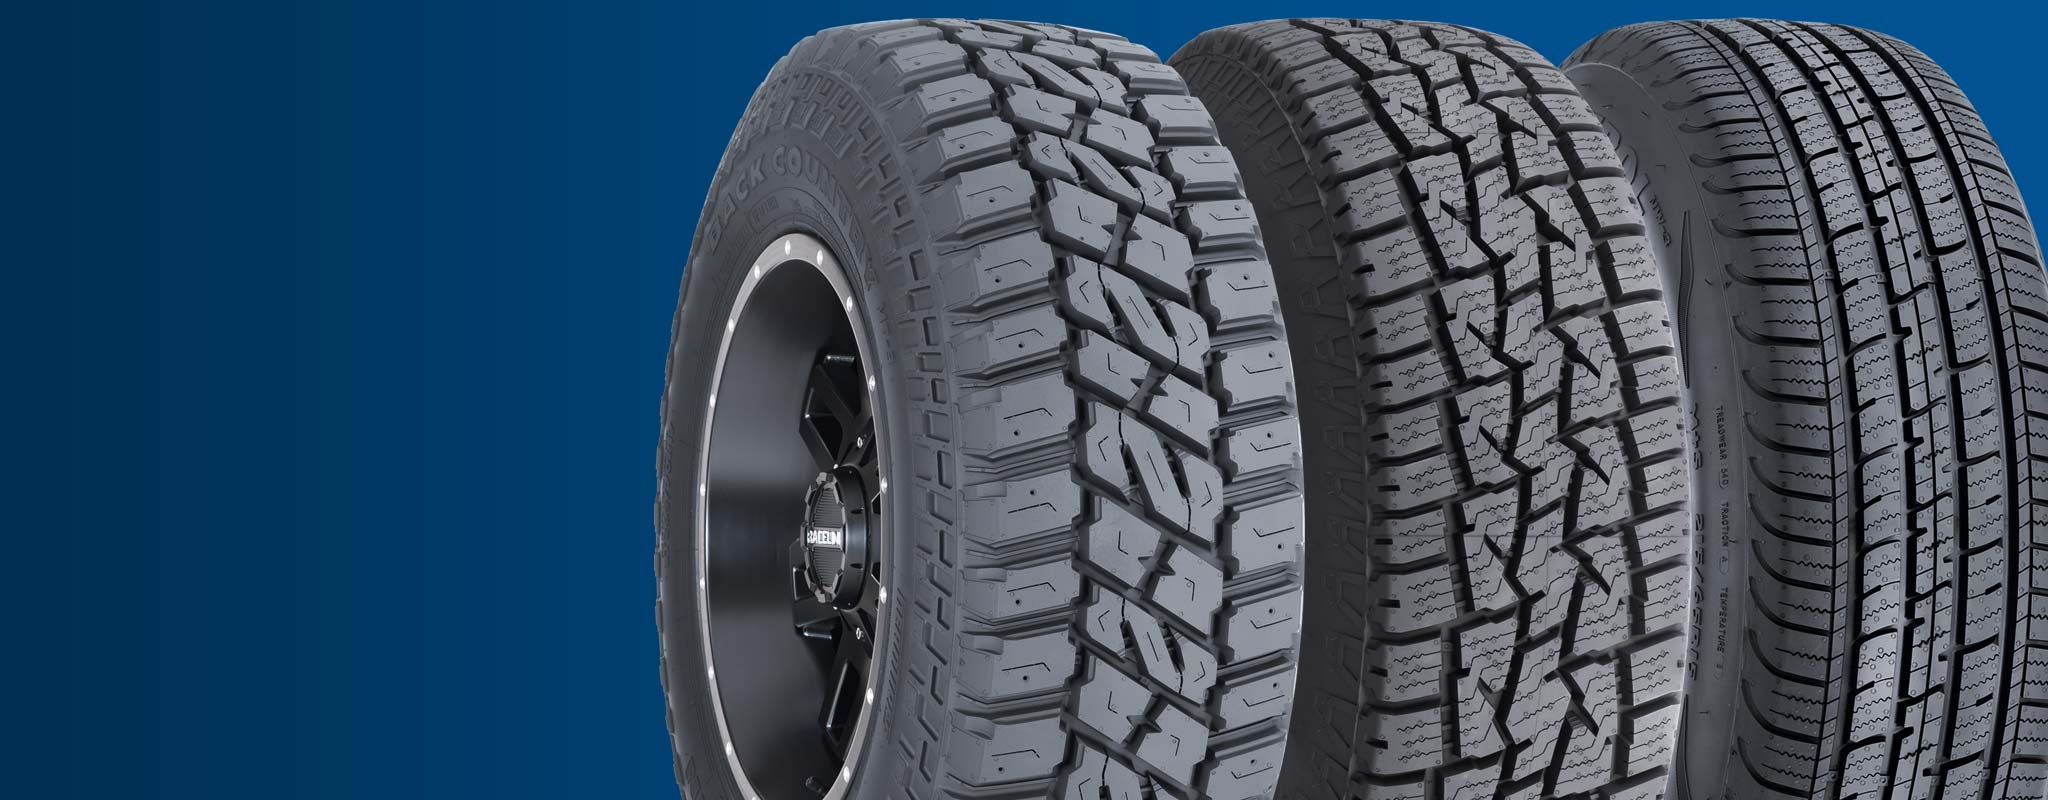 Tires & Wheels for Sale | Buy New Tires Online & In-Person - Les Schwab